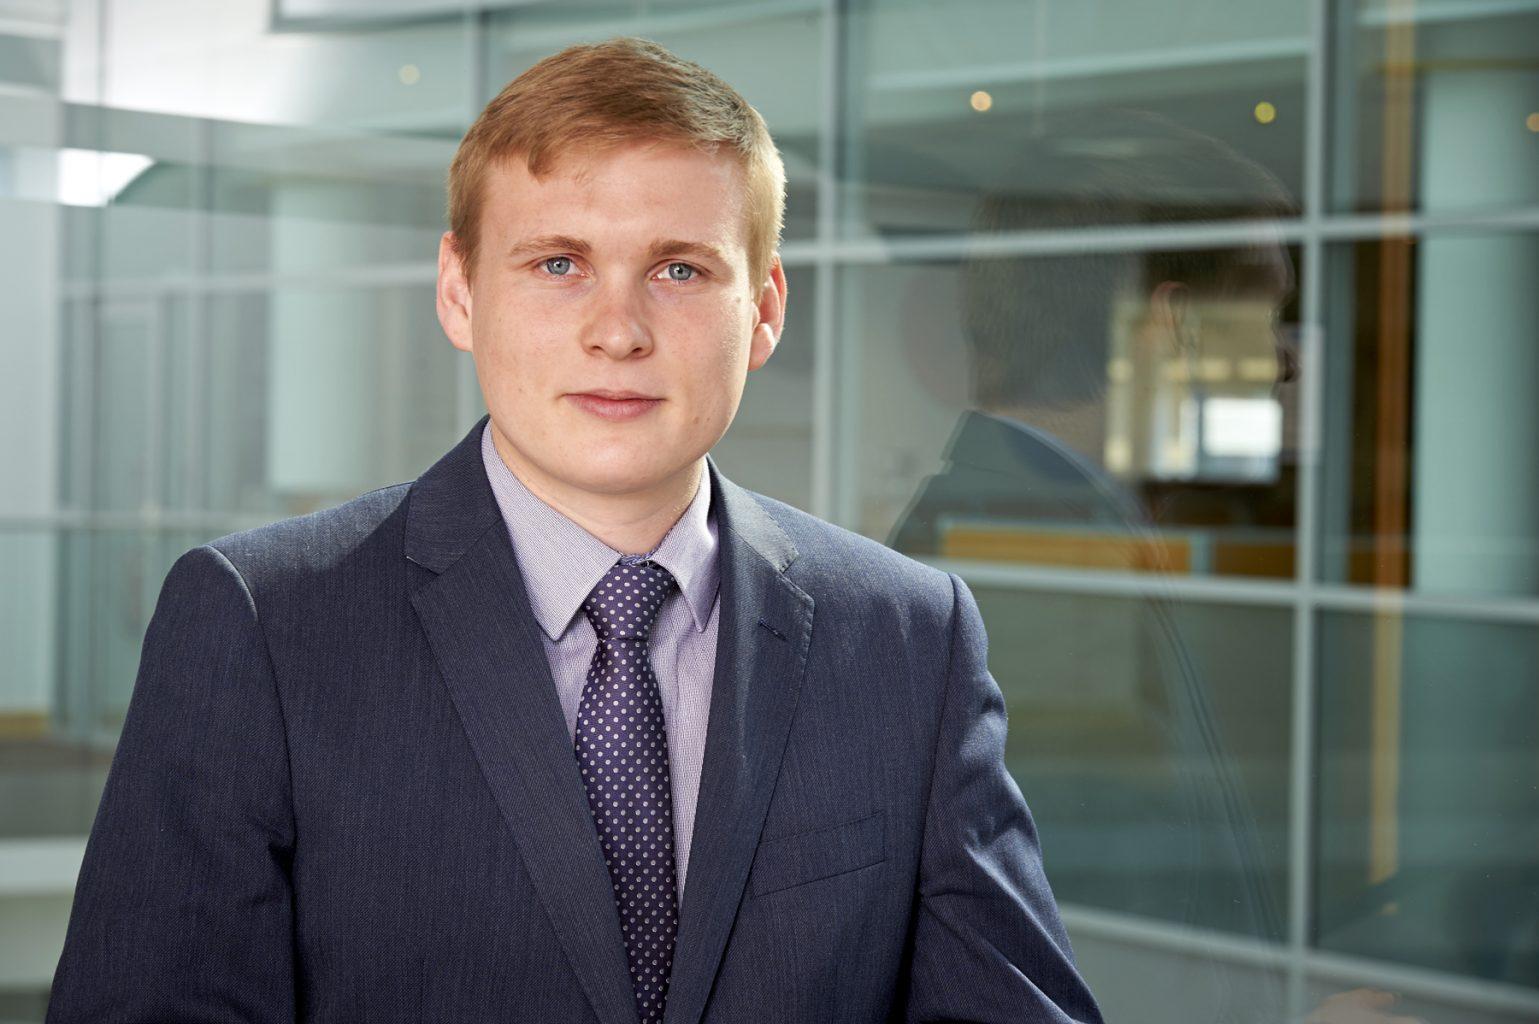 David Siddall corporate headshot for Juniper Networks